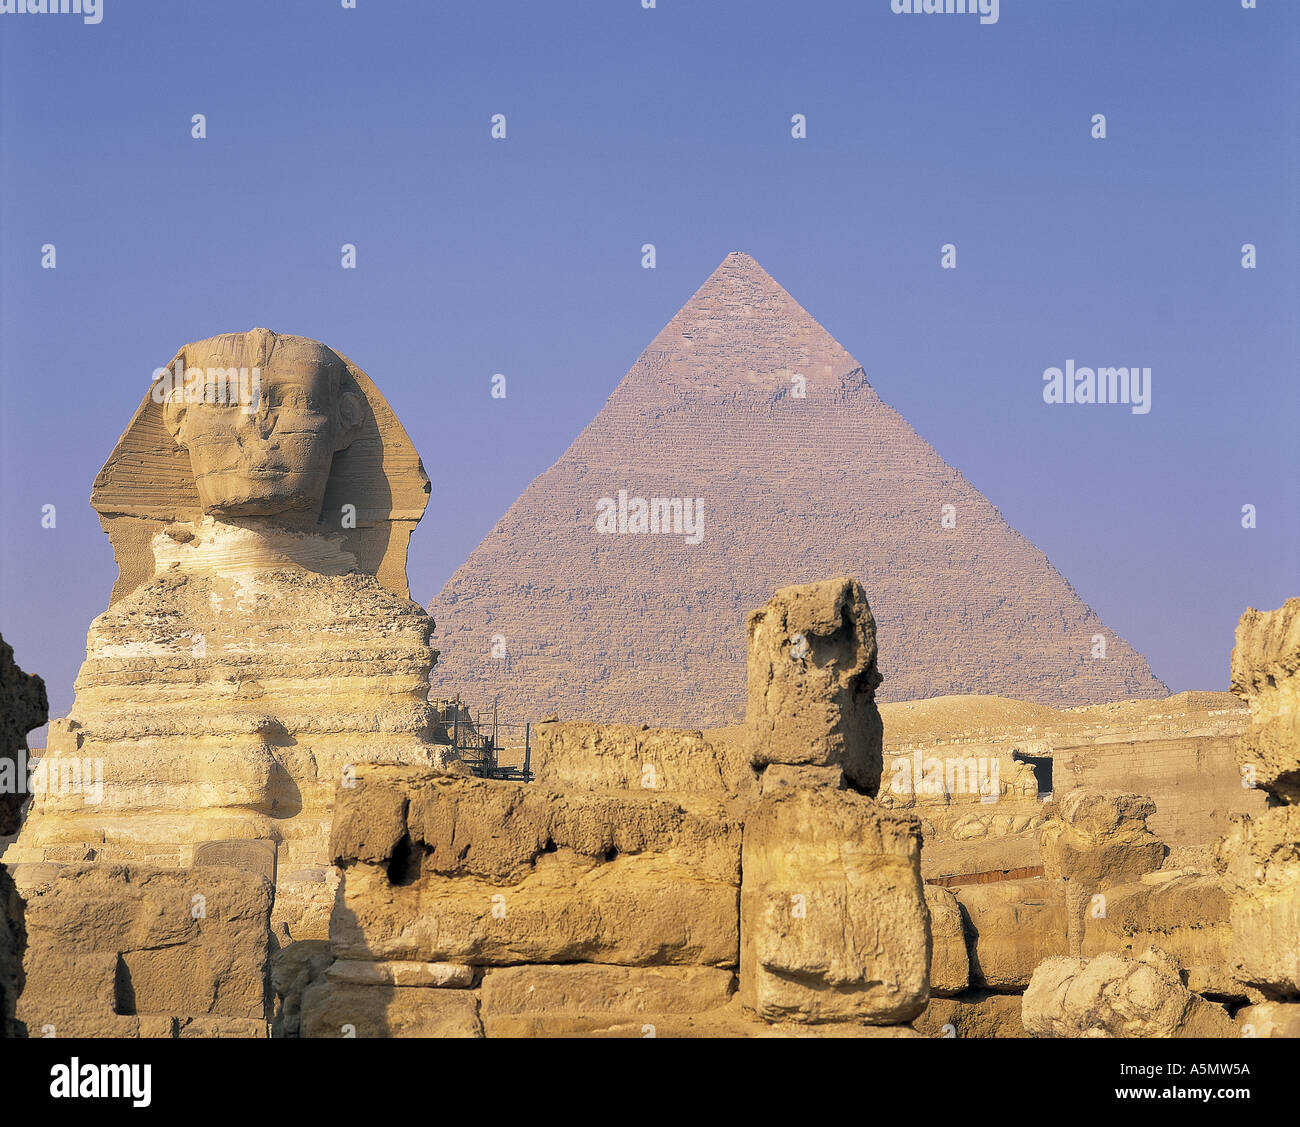 Sphinx and pyramid at Giza Egypt - Stock Image